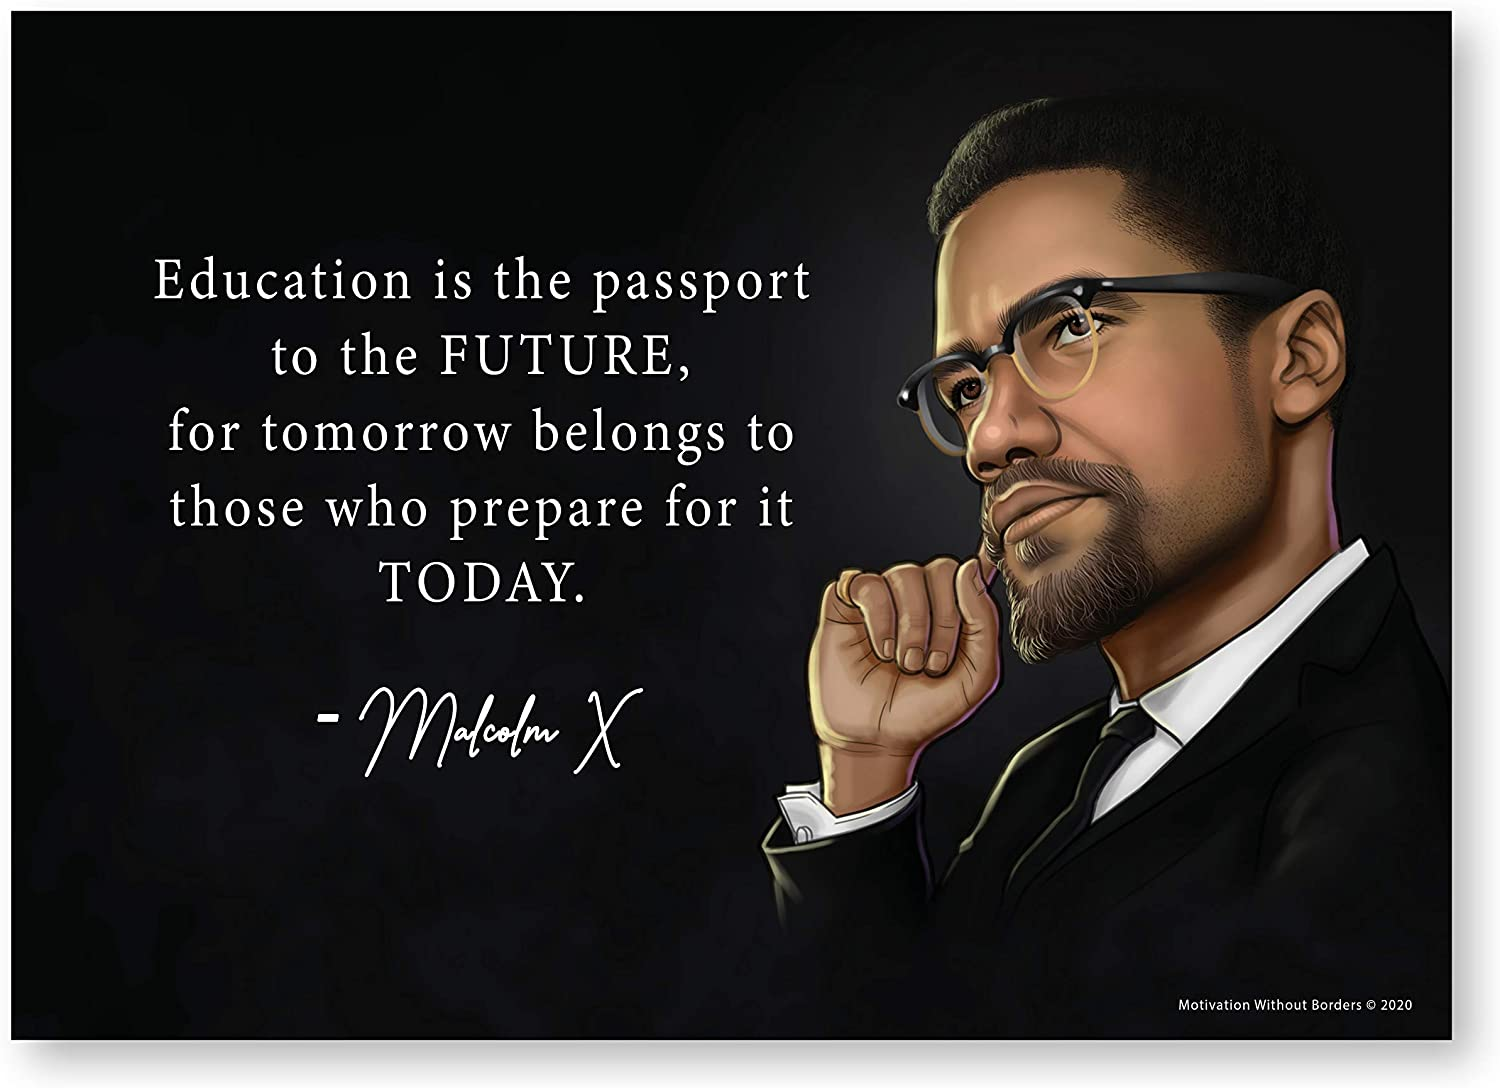 Malcolm X Poster (Black History Posters 13x18 Non Laminated) Social Justice Civil Rights Posters (1 Poster Included)